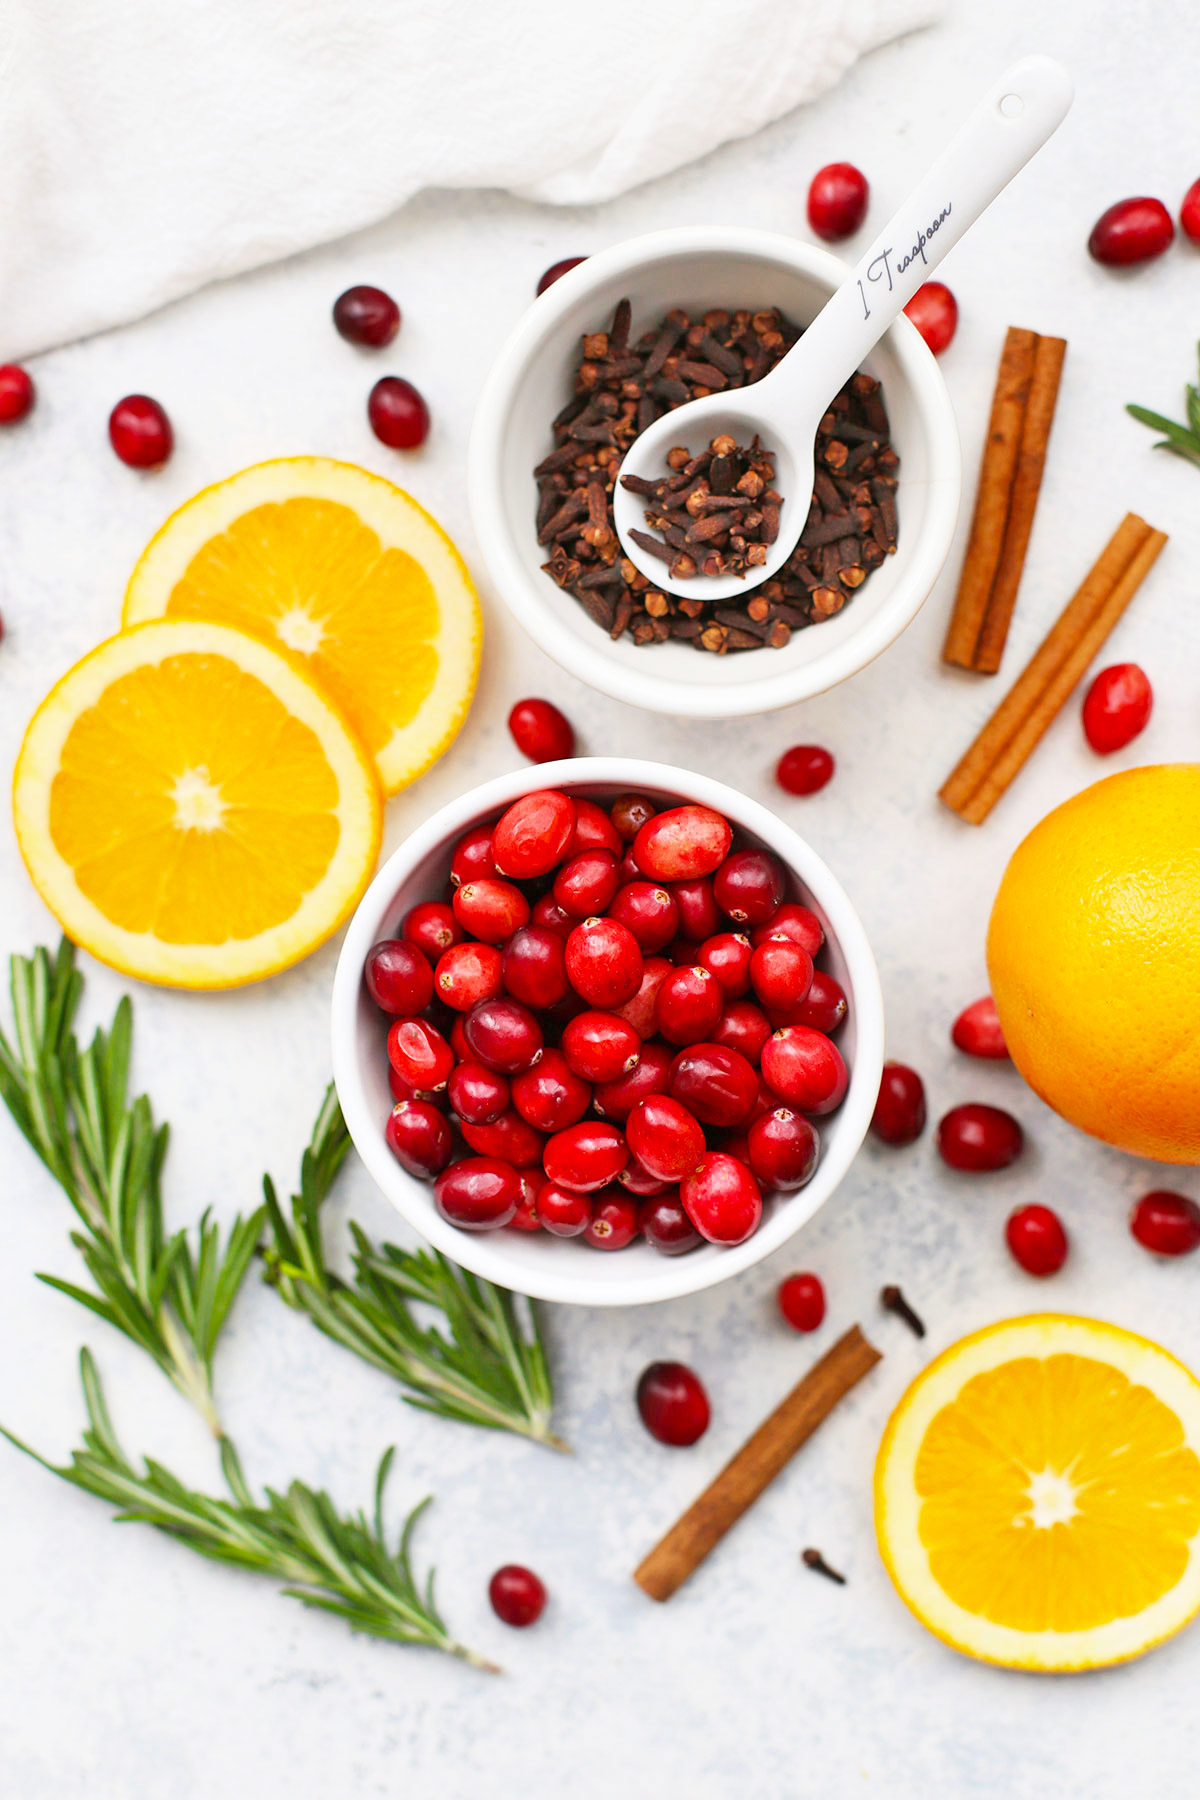 Ingredients for Stovetop Christmas Potpourri - Cranberries, oranges, rosemary, cinnamon sticks, and whole cloves.